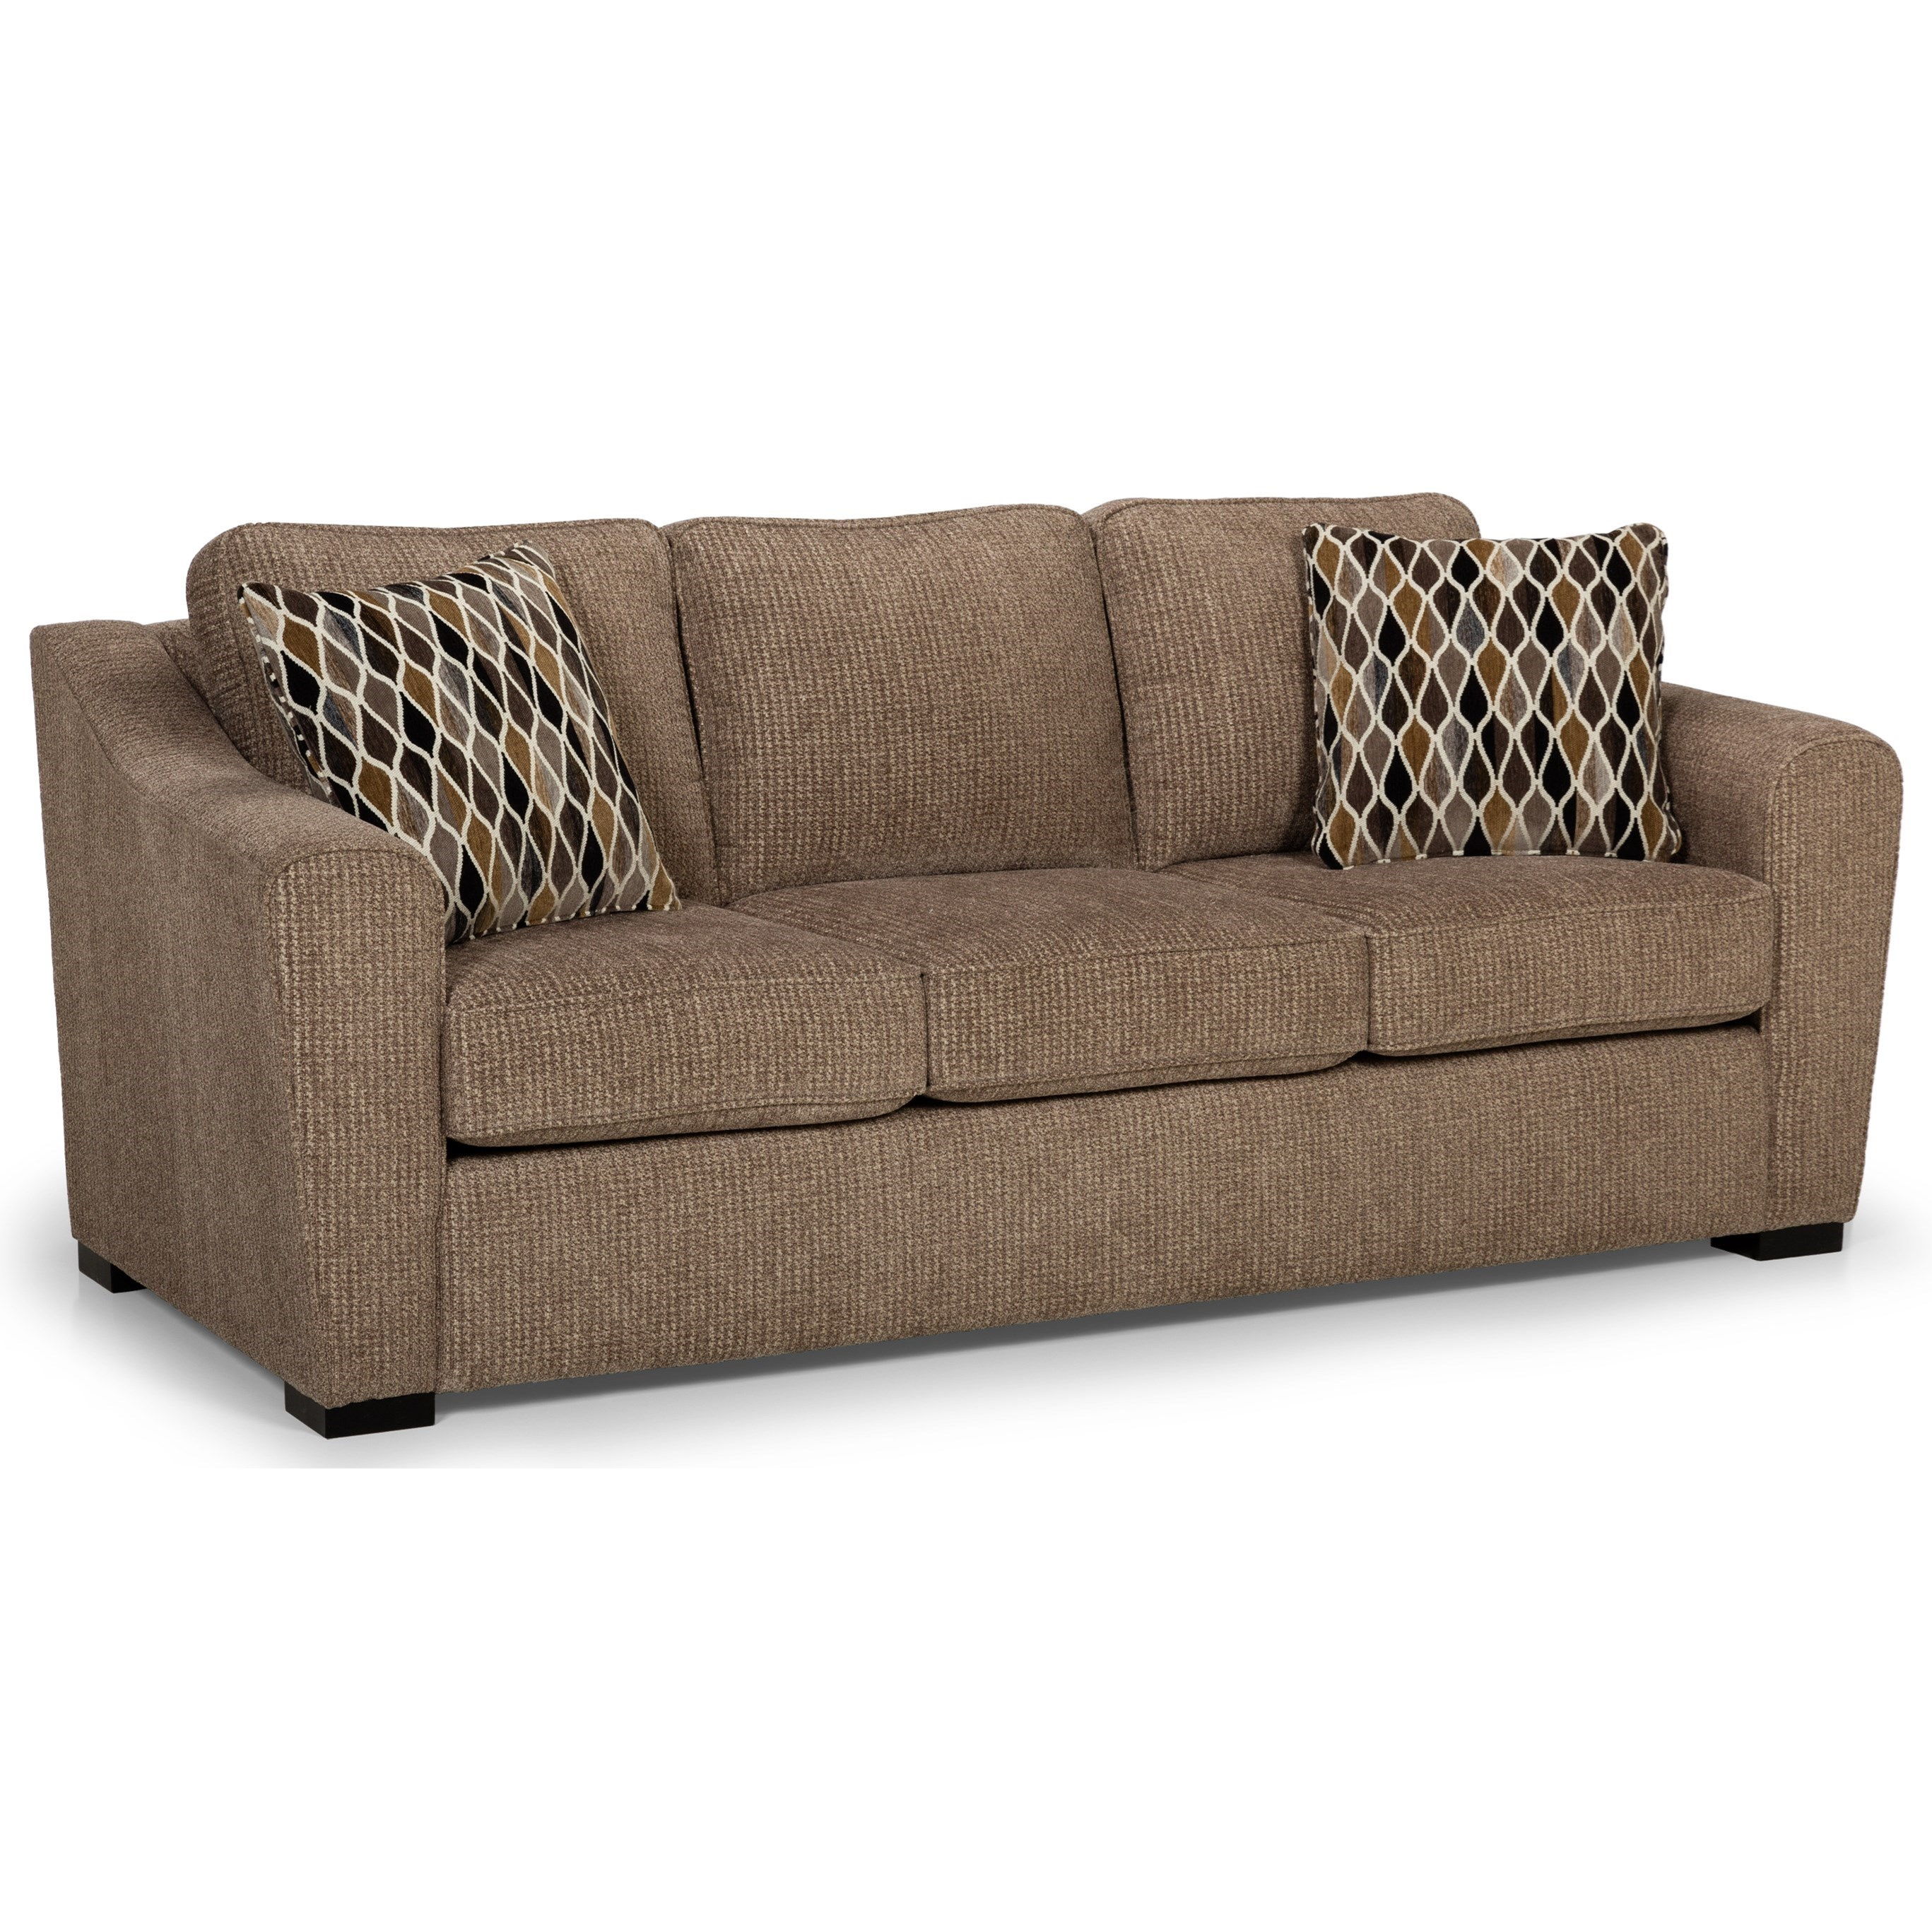 423 Sleeper Sofa with Basic Mattress by Stanton at Wilson's Furniture